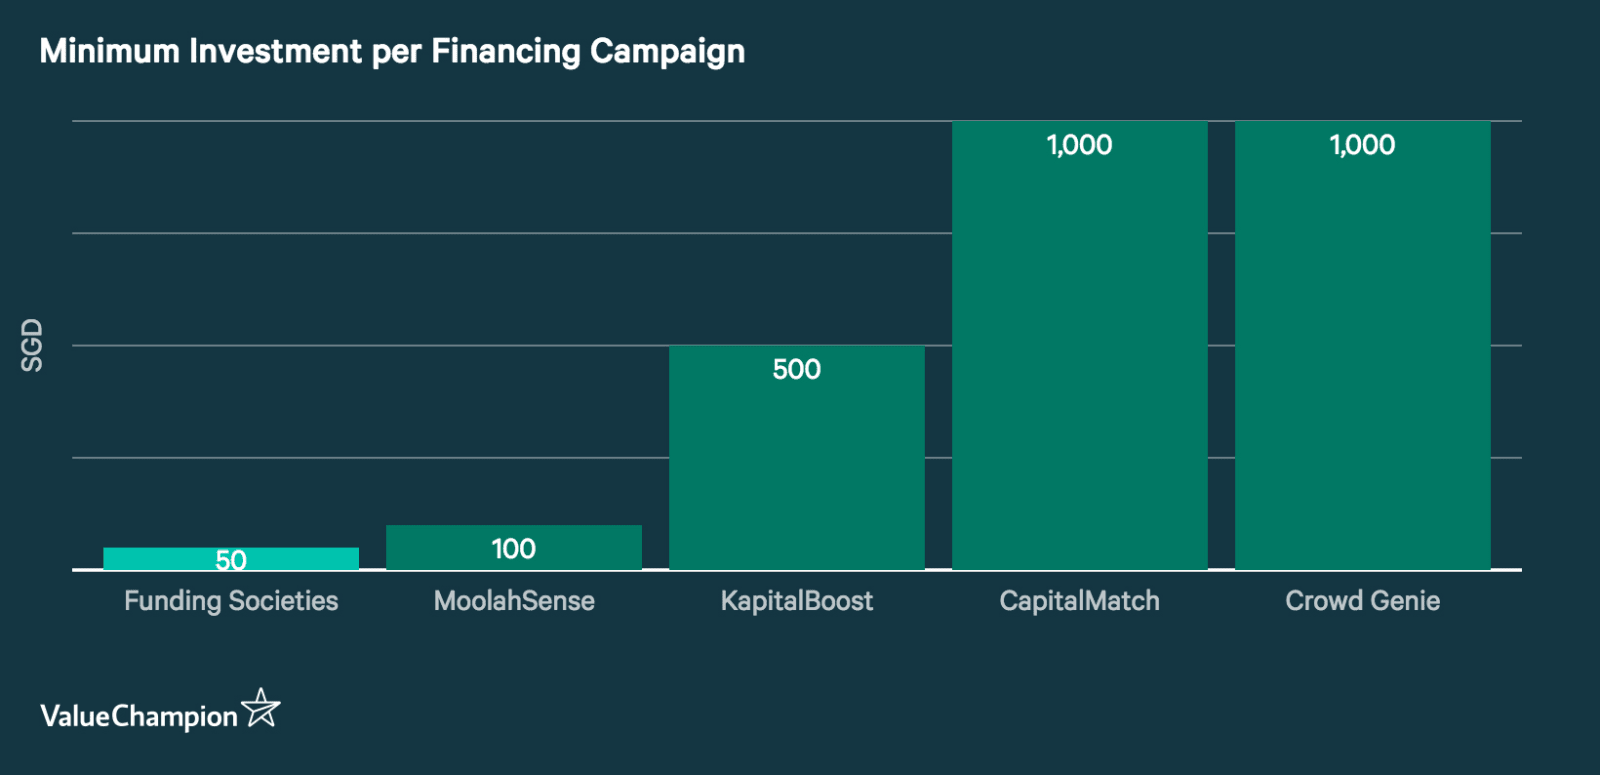 Graph showing the Minimum investment per financing campaign requirement of five major P2P platforms in Singapore. Funding Societies has the lowest required investment per campaign of S$50